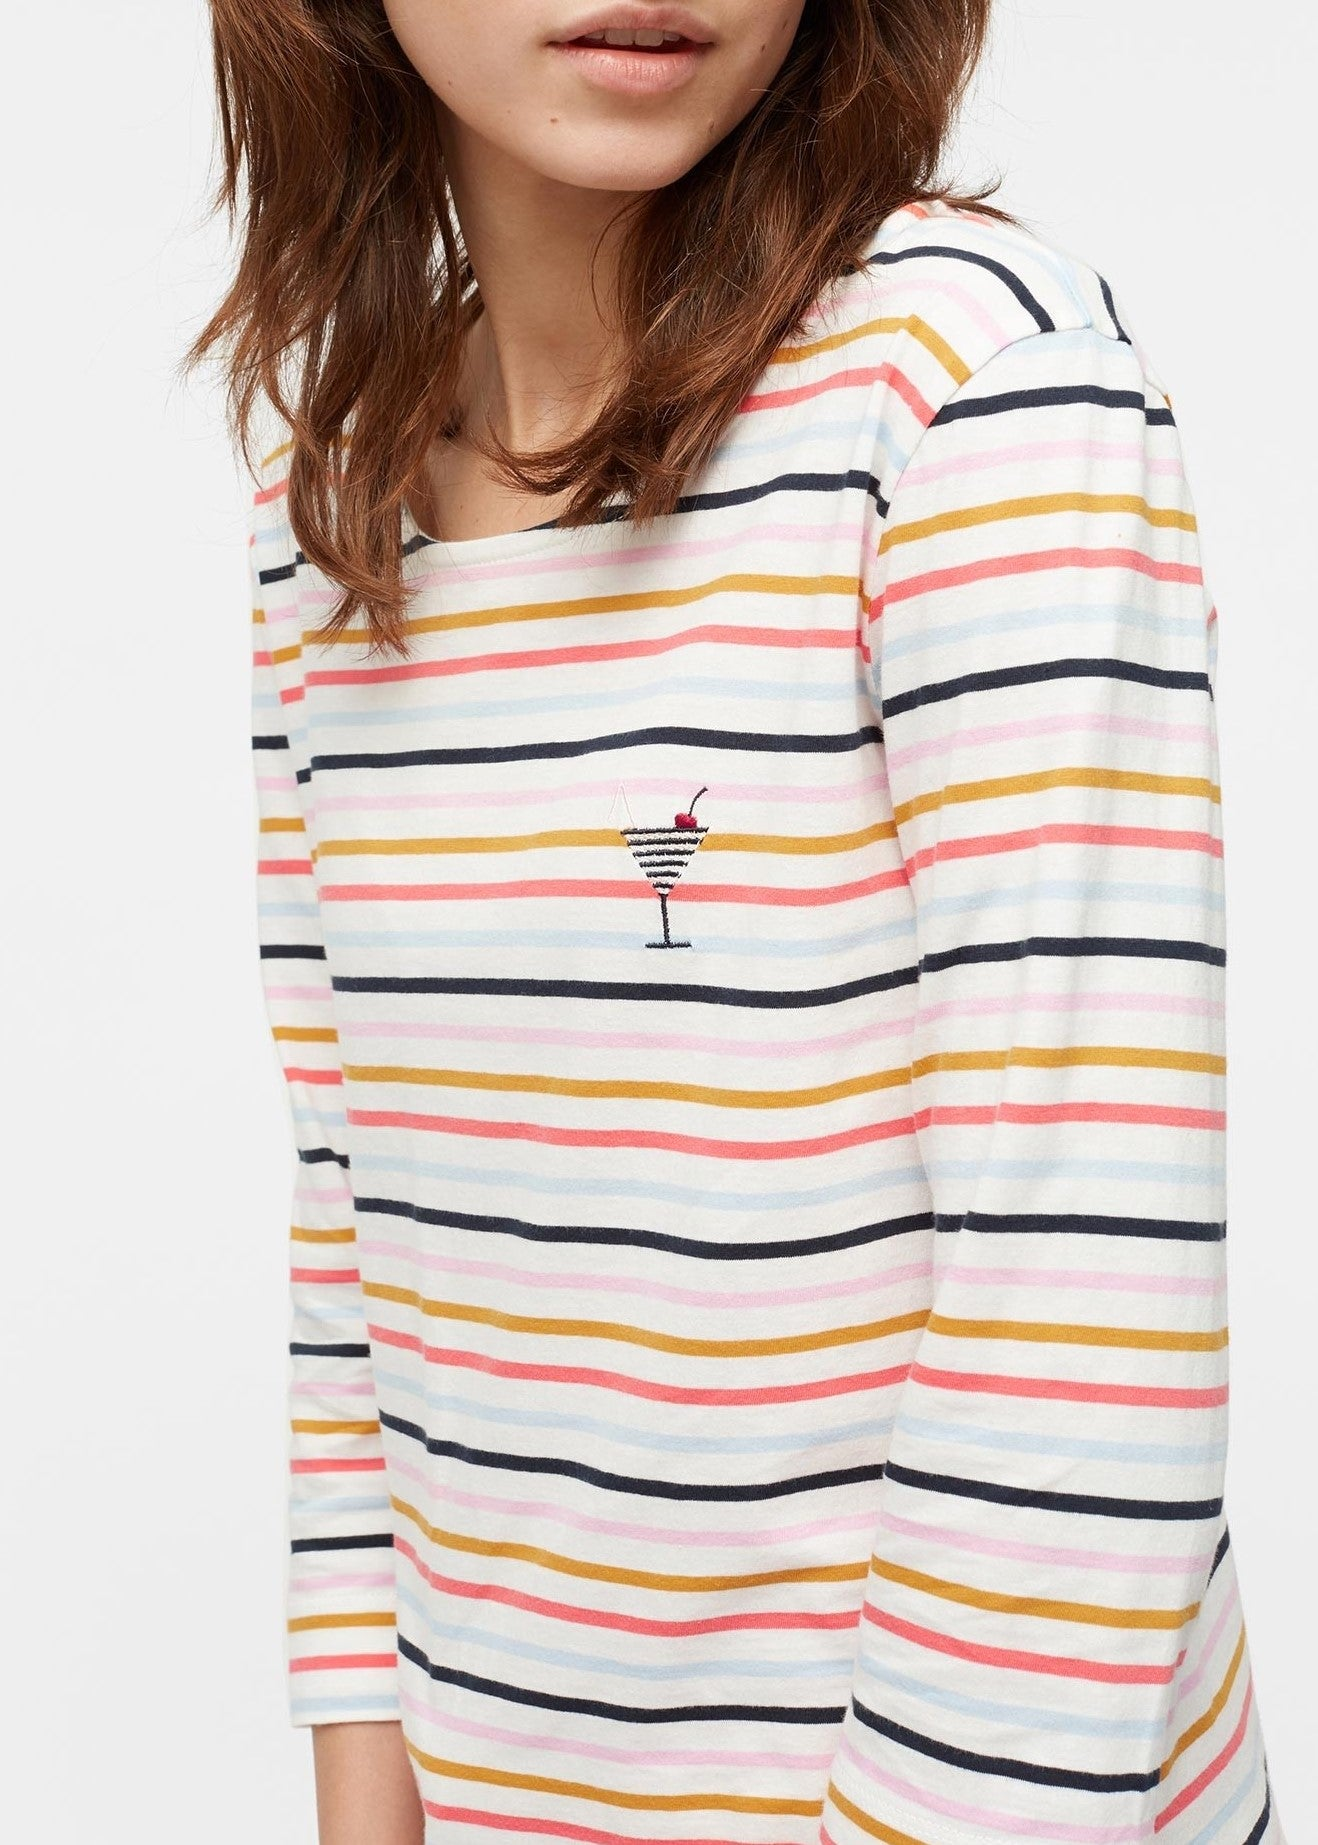 Chinti & Parker long sleeve breton top in ecru multi